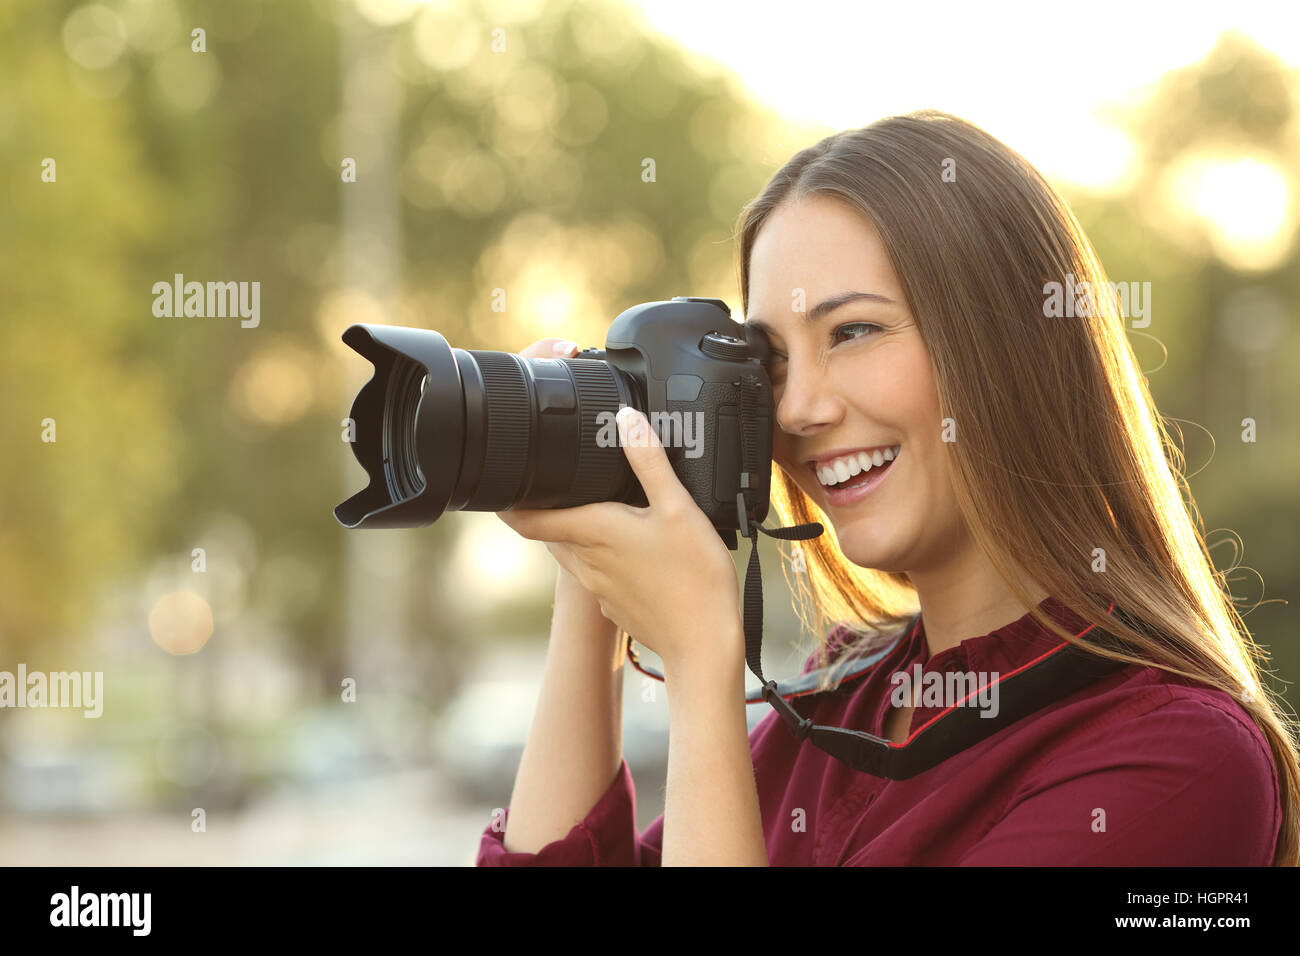 Photographer photographing with a digital camera outdoors at sunset with a warm light - Stock Image